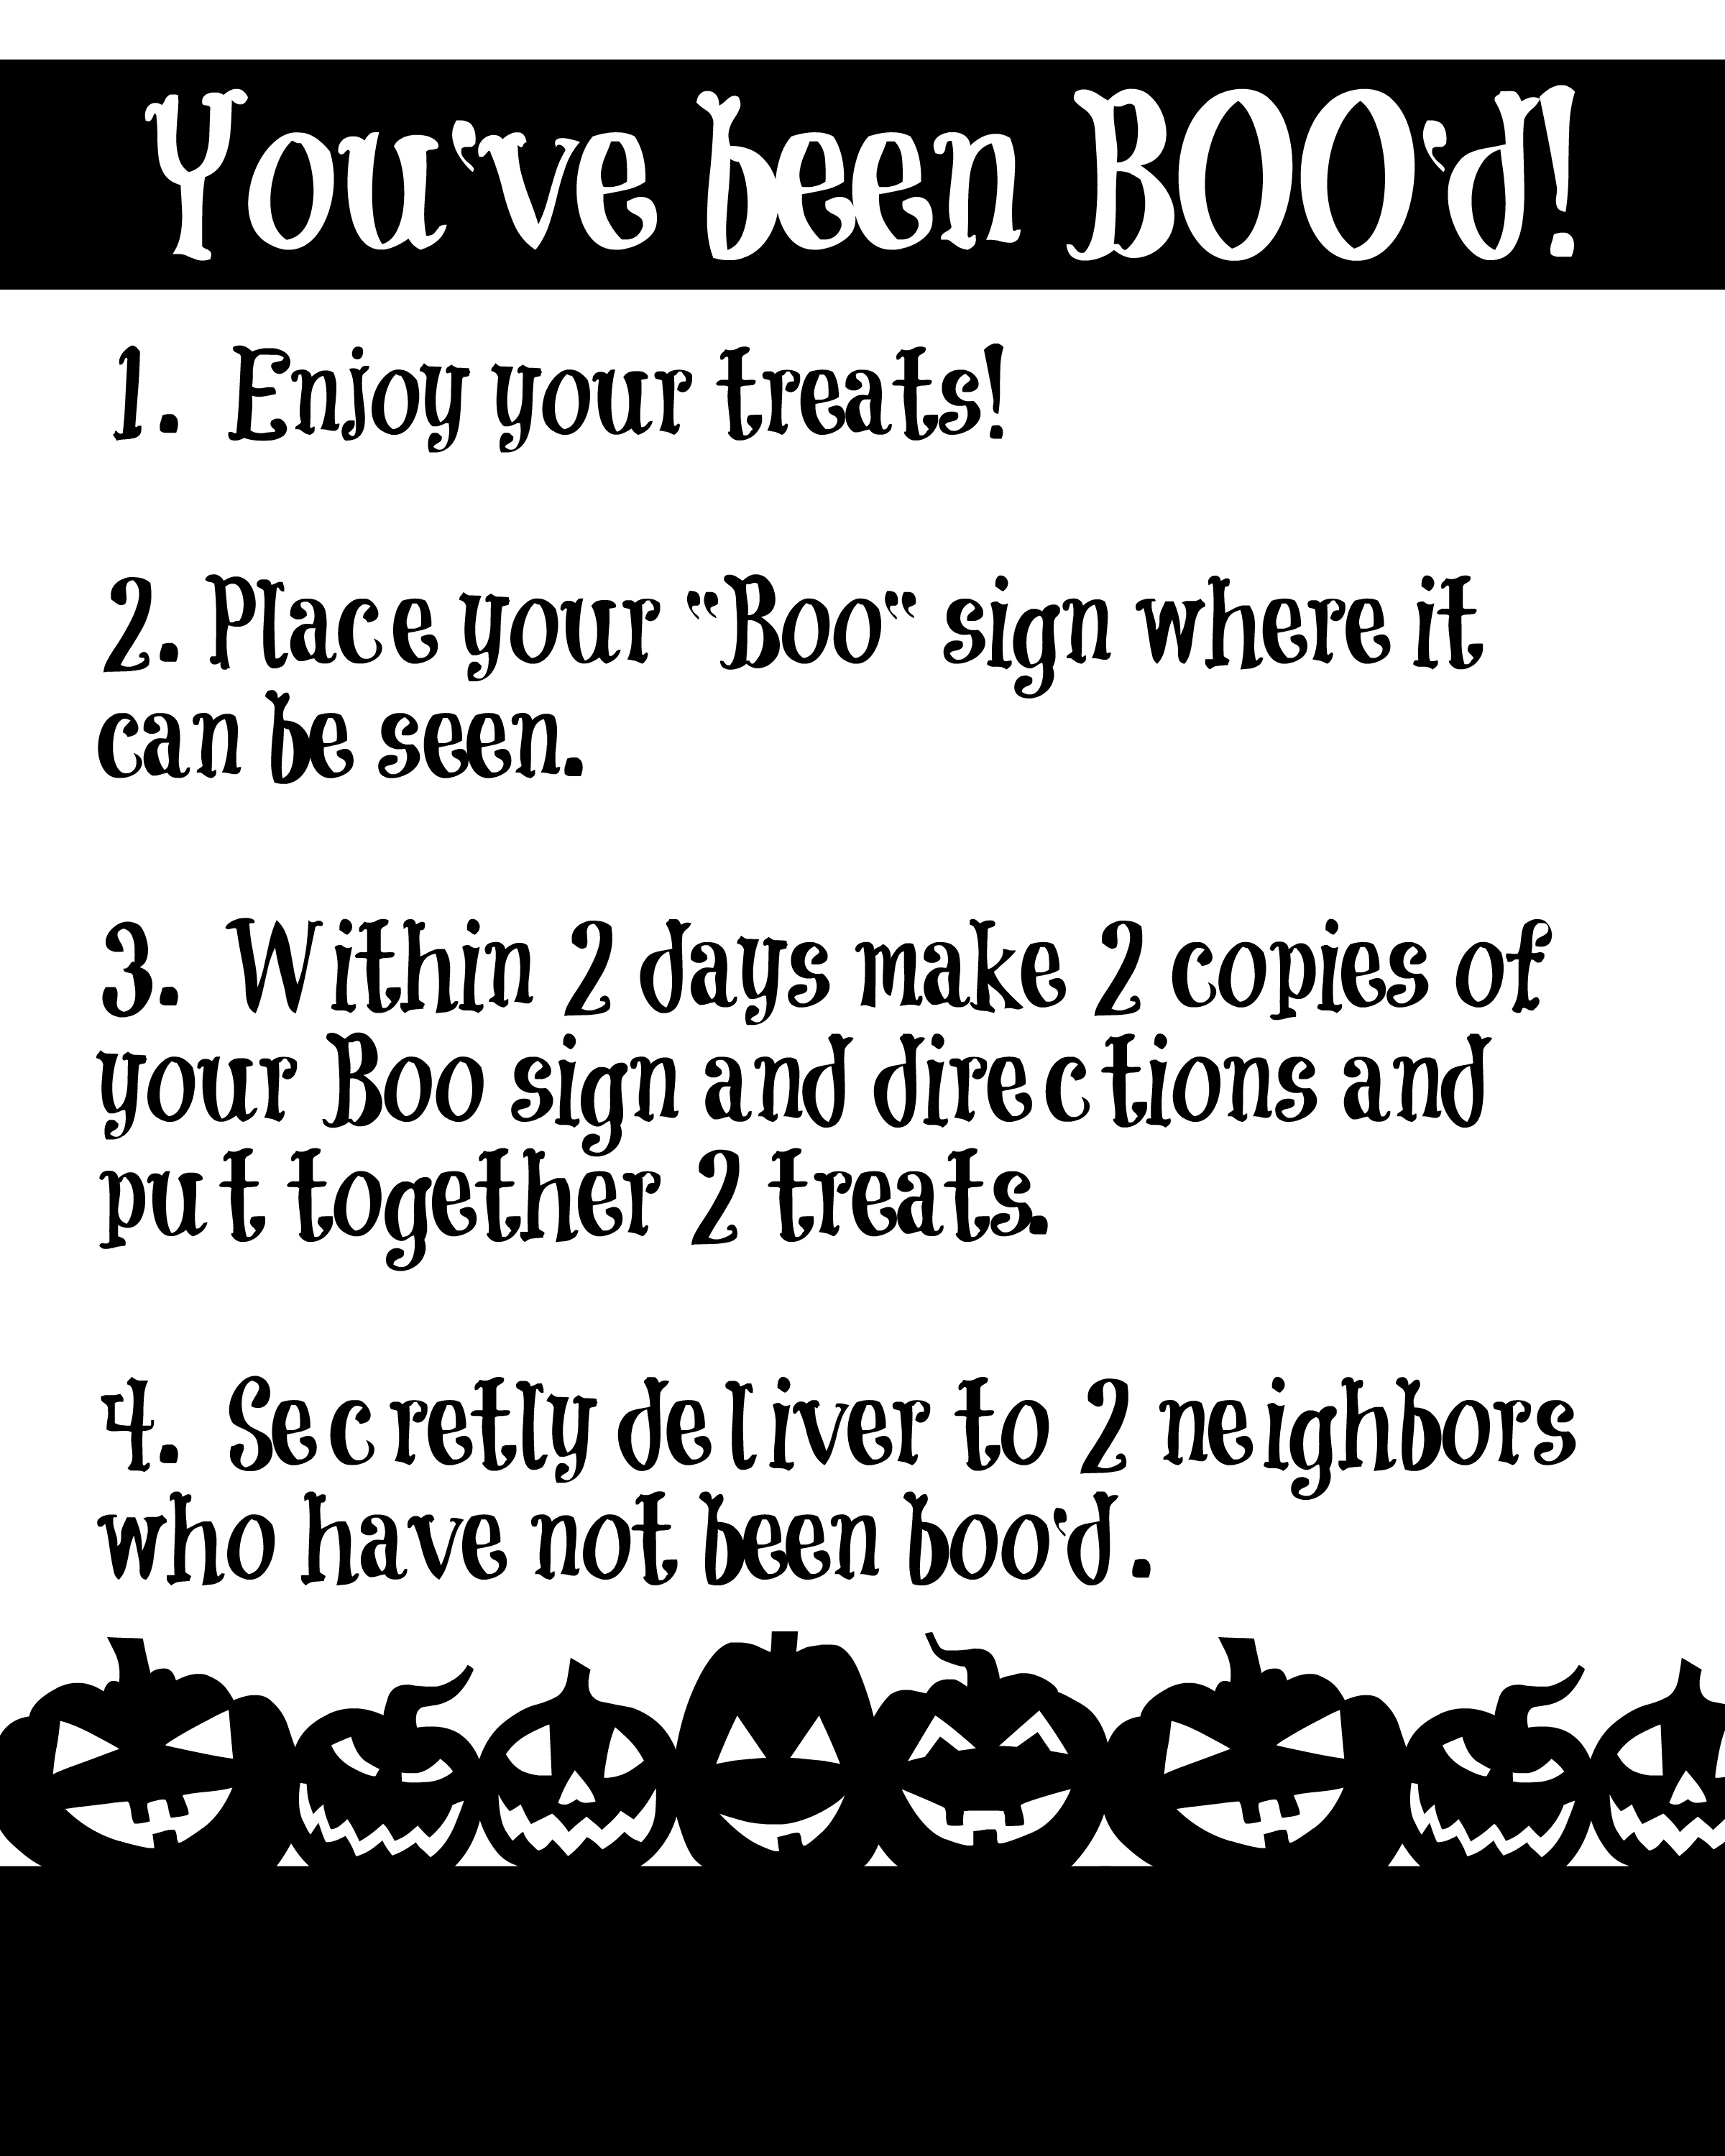 How to Boo Your Neighbors